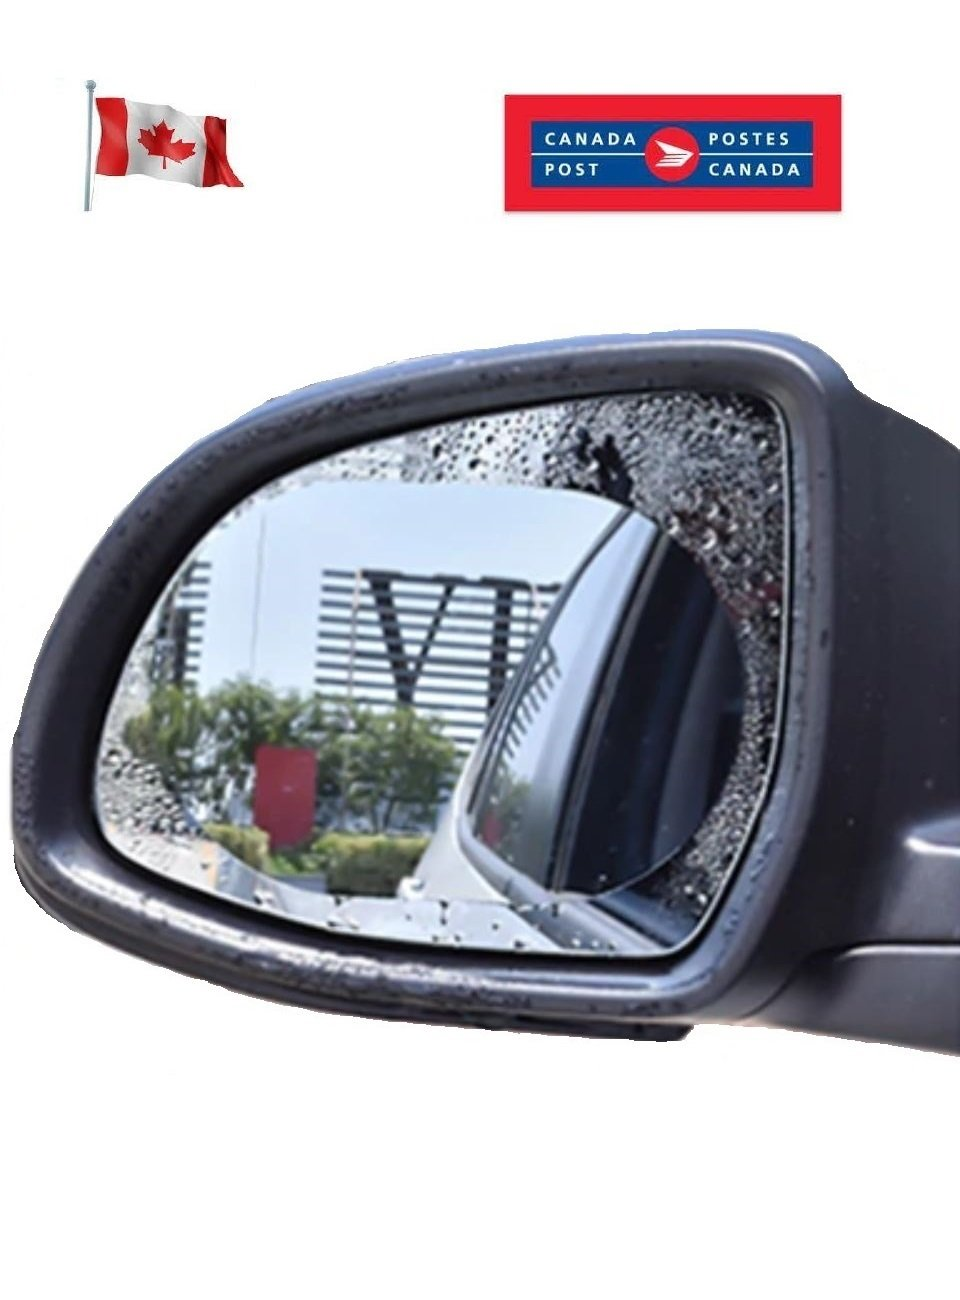 Large Car Rearview Mirror Protective Film Anti Fog Decal Clear Rainproof Rear Sticker